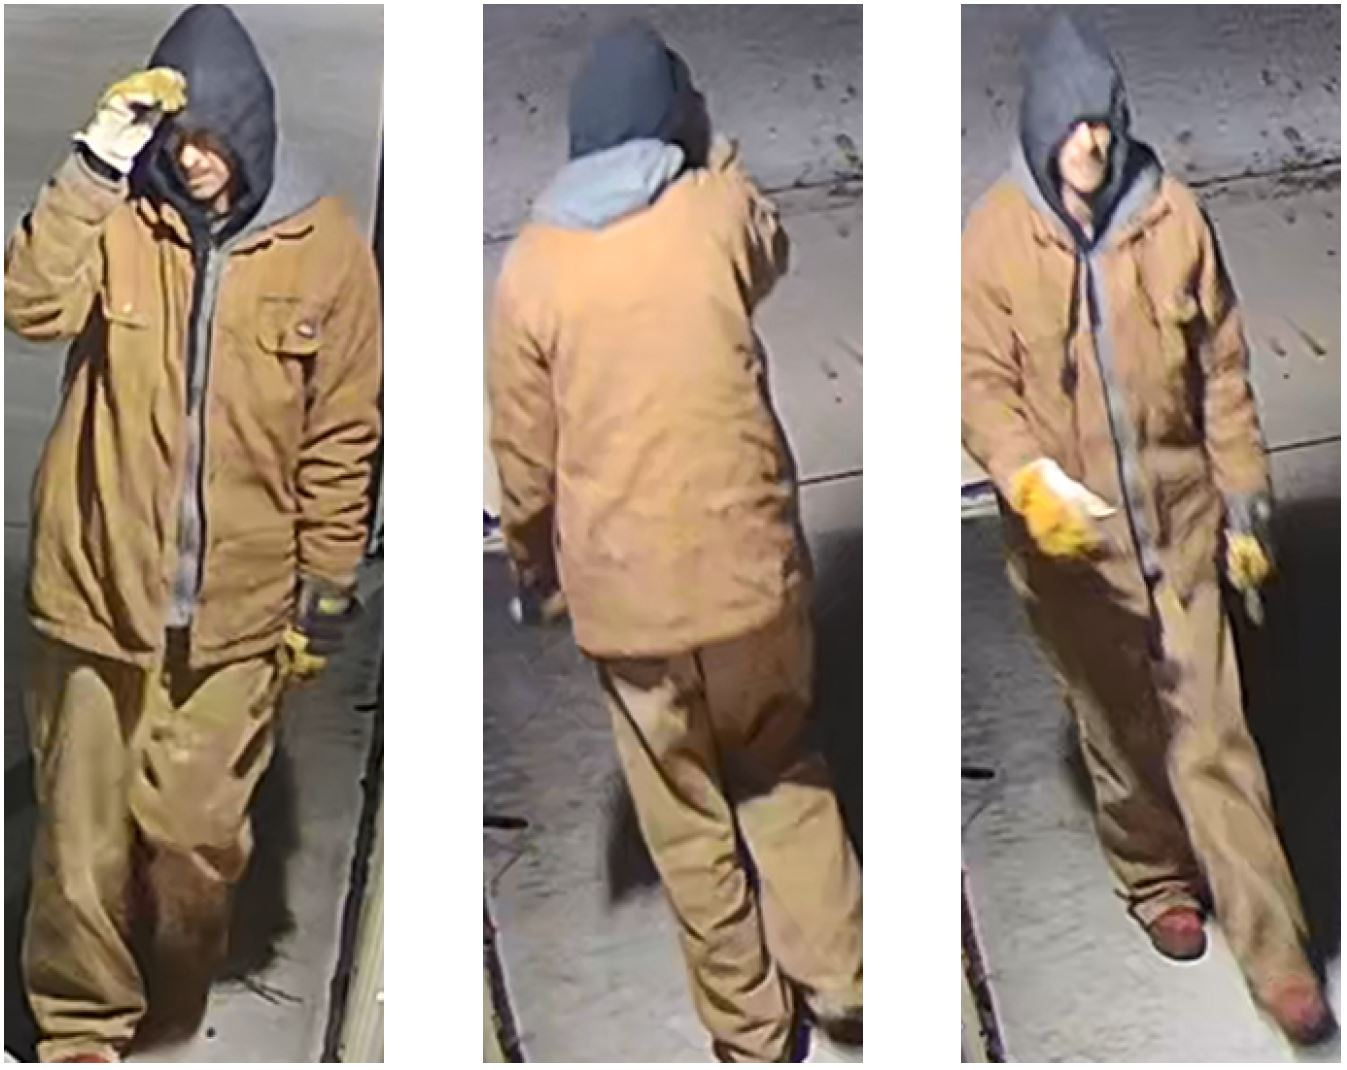 Collage of burglary suspect dressed in tan jacket, gray hoodie and tan pants. Suspect is also wearing yellow gloves.